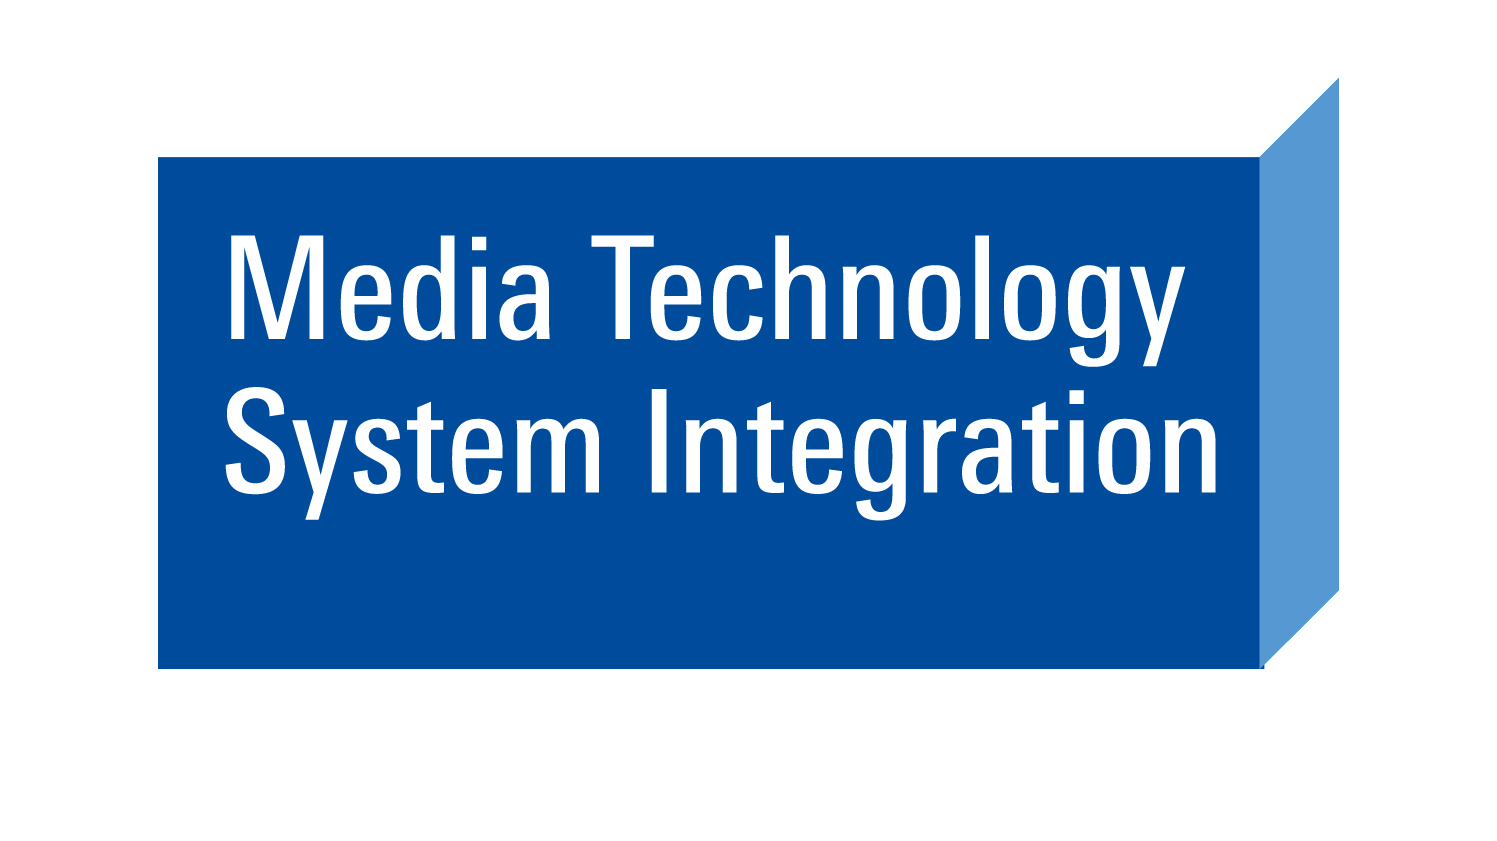 Media Technology & System Integration